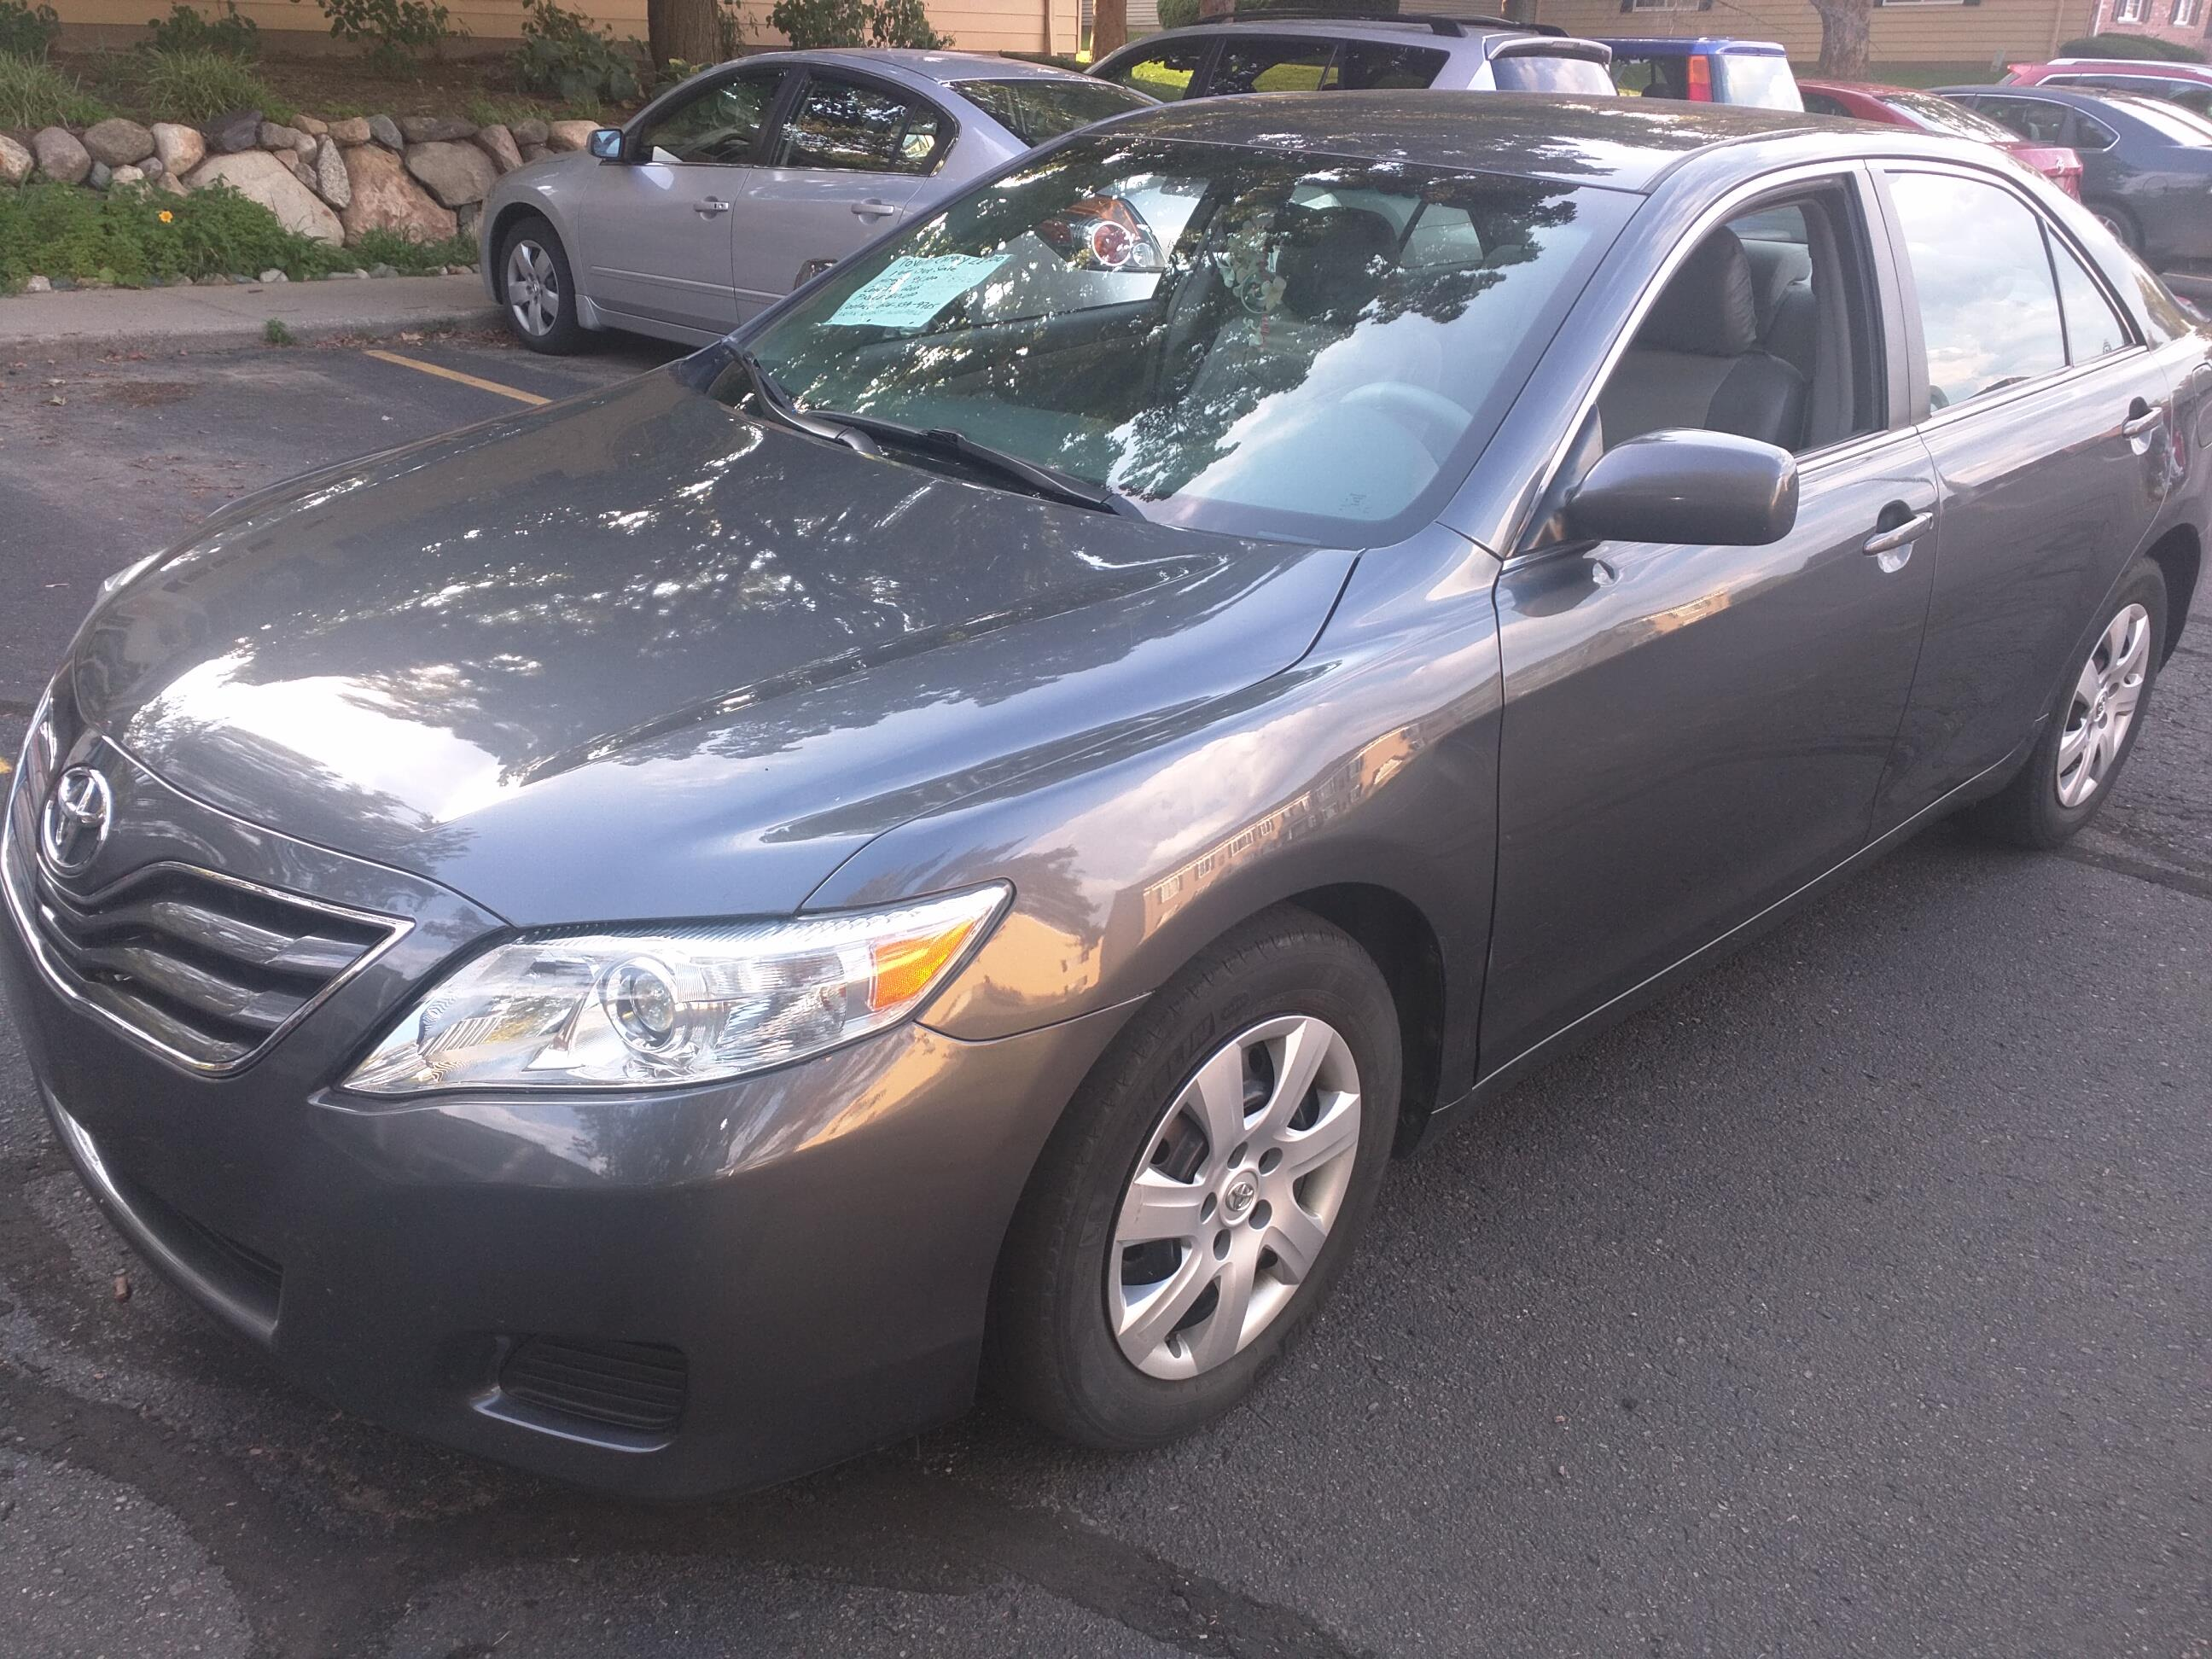 Very good condition 2010 toyota camry for sale by owner price negotiable clean title ready to drive you can find more images here